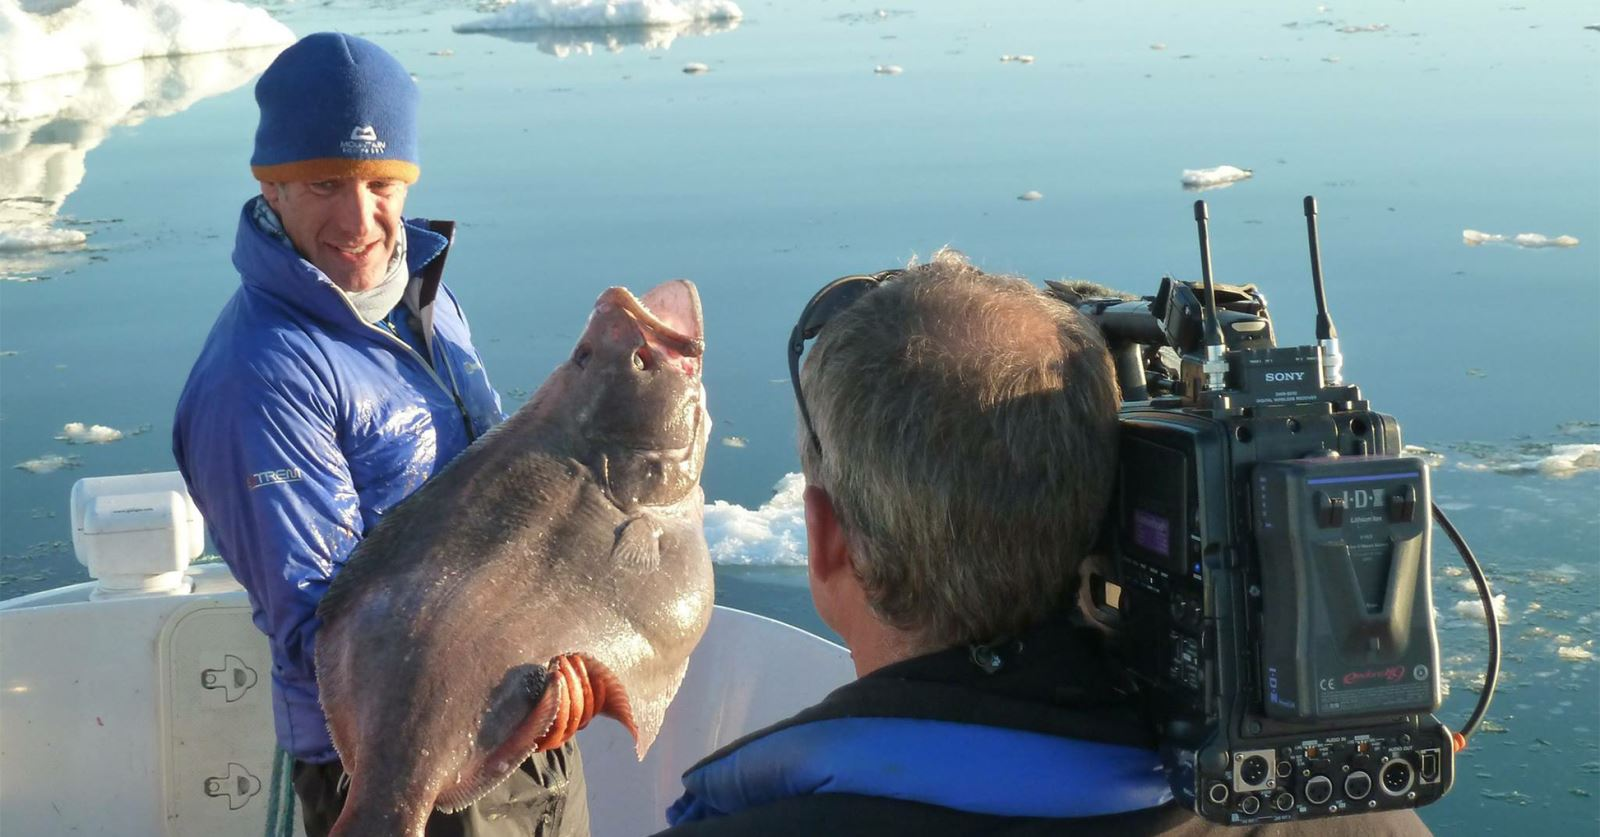 GTC member Richard Cook filming 'Extreme Fishing' with Robson Green in Greenland